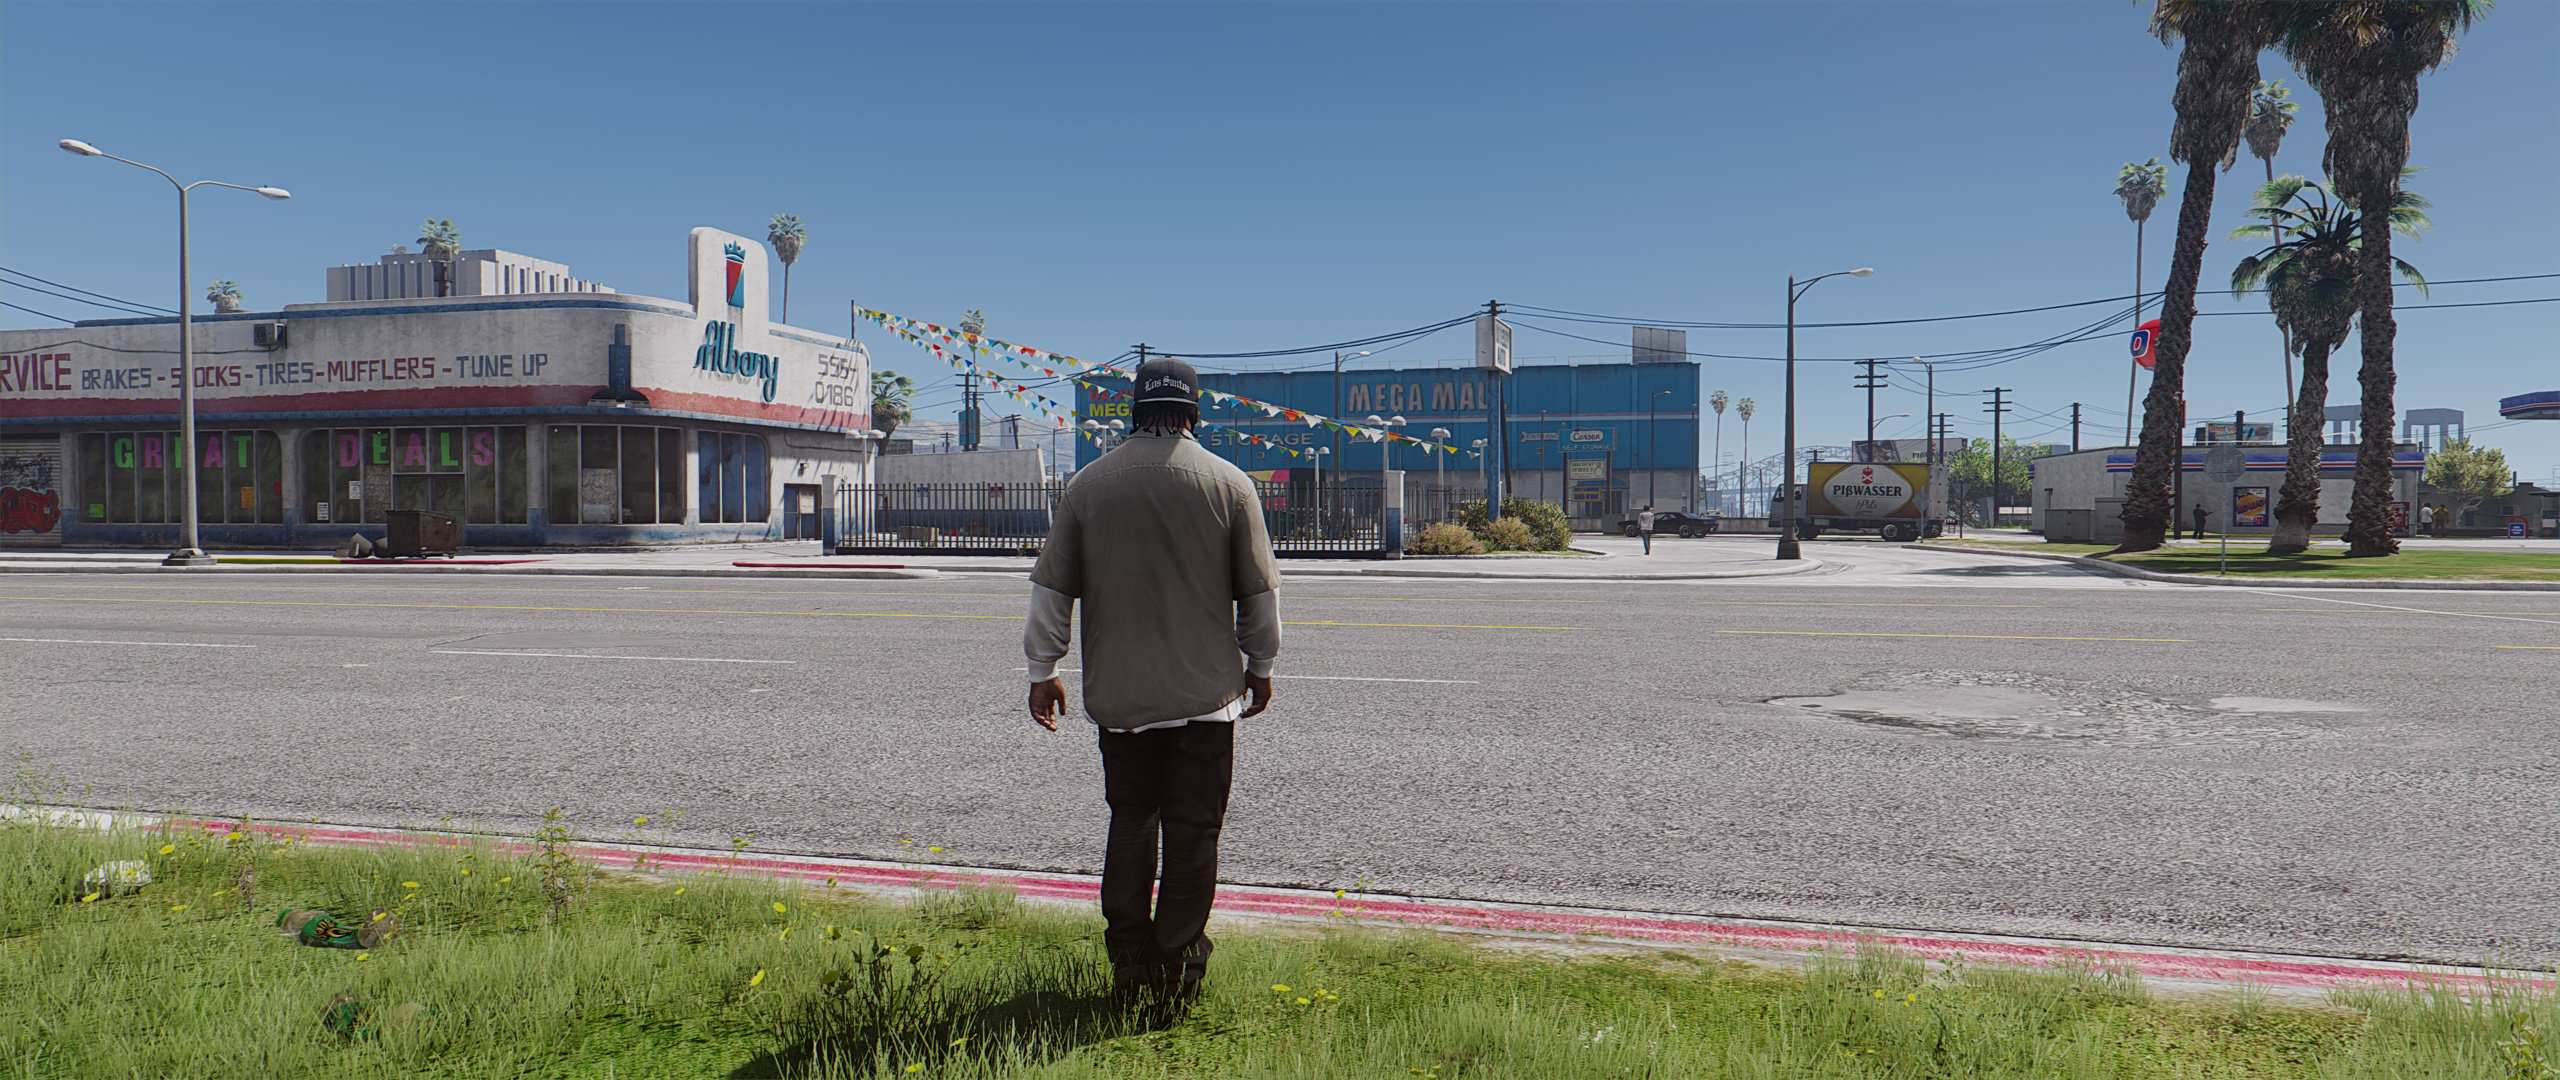 Incredible GTA V Mod Aims For True Photorealism 87832a 8